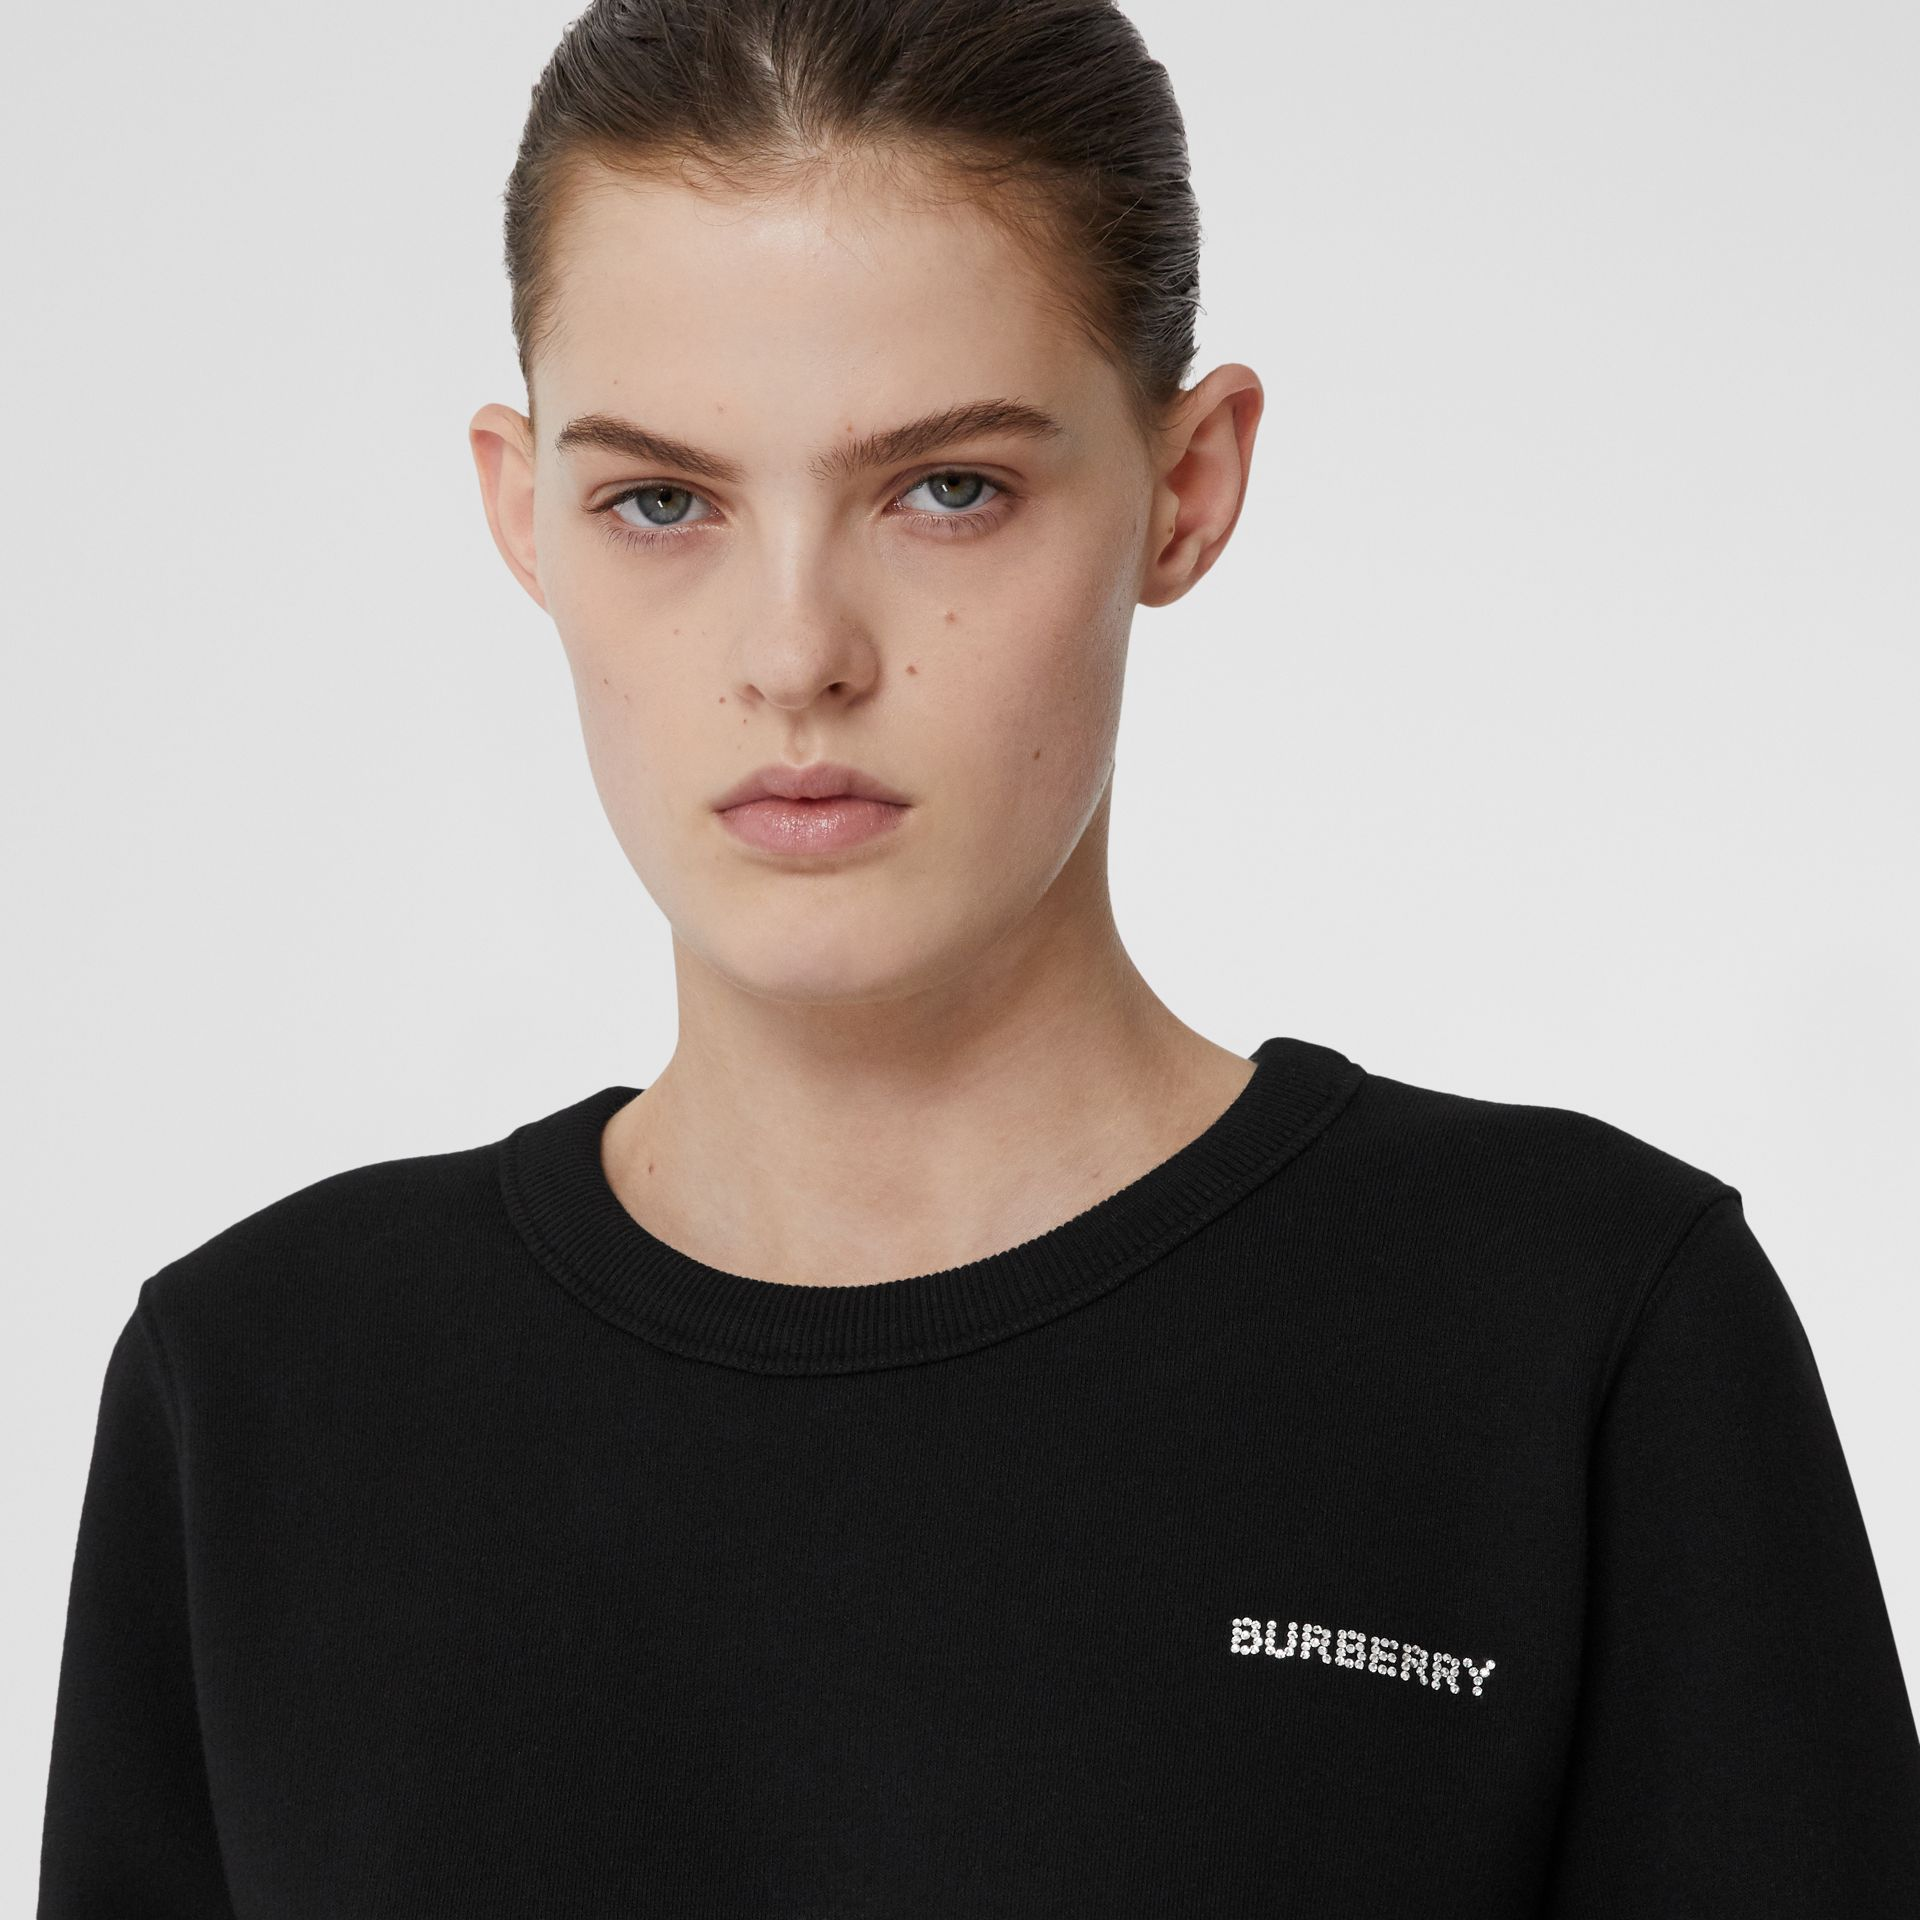 Crystal Monogram Motif Cotton Oversized Sweatshirt in Black - Women | Burberry - gallery image 1